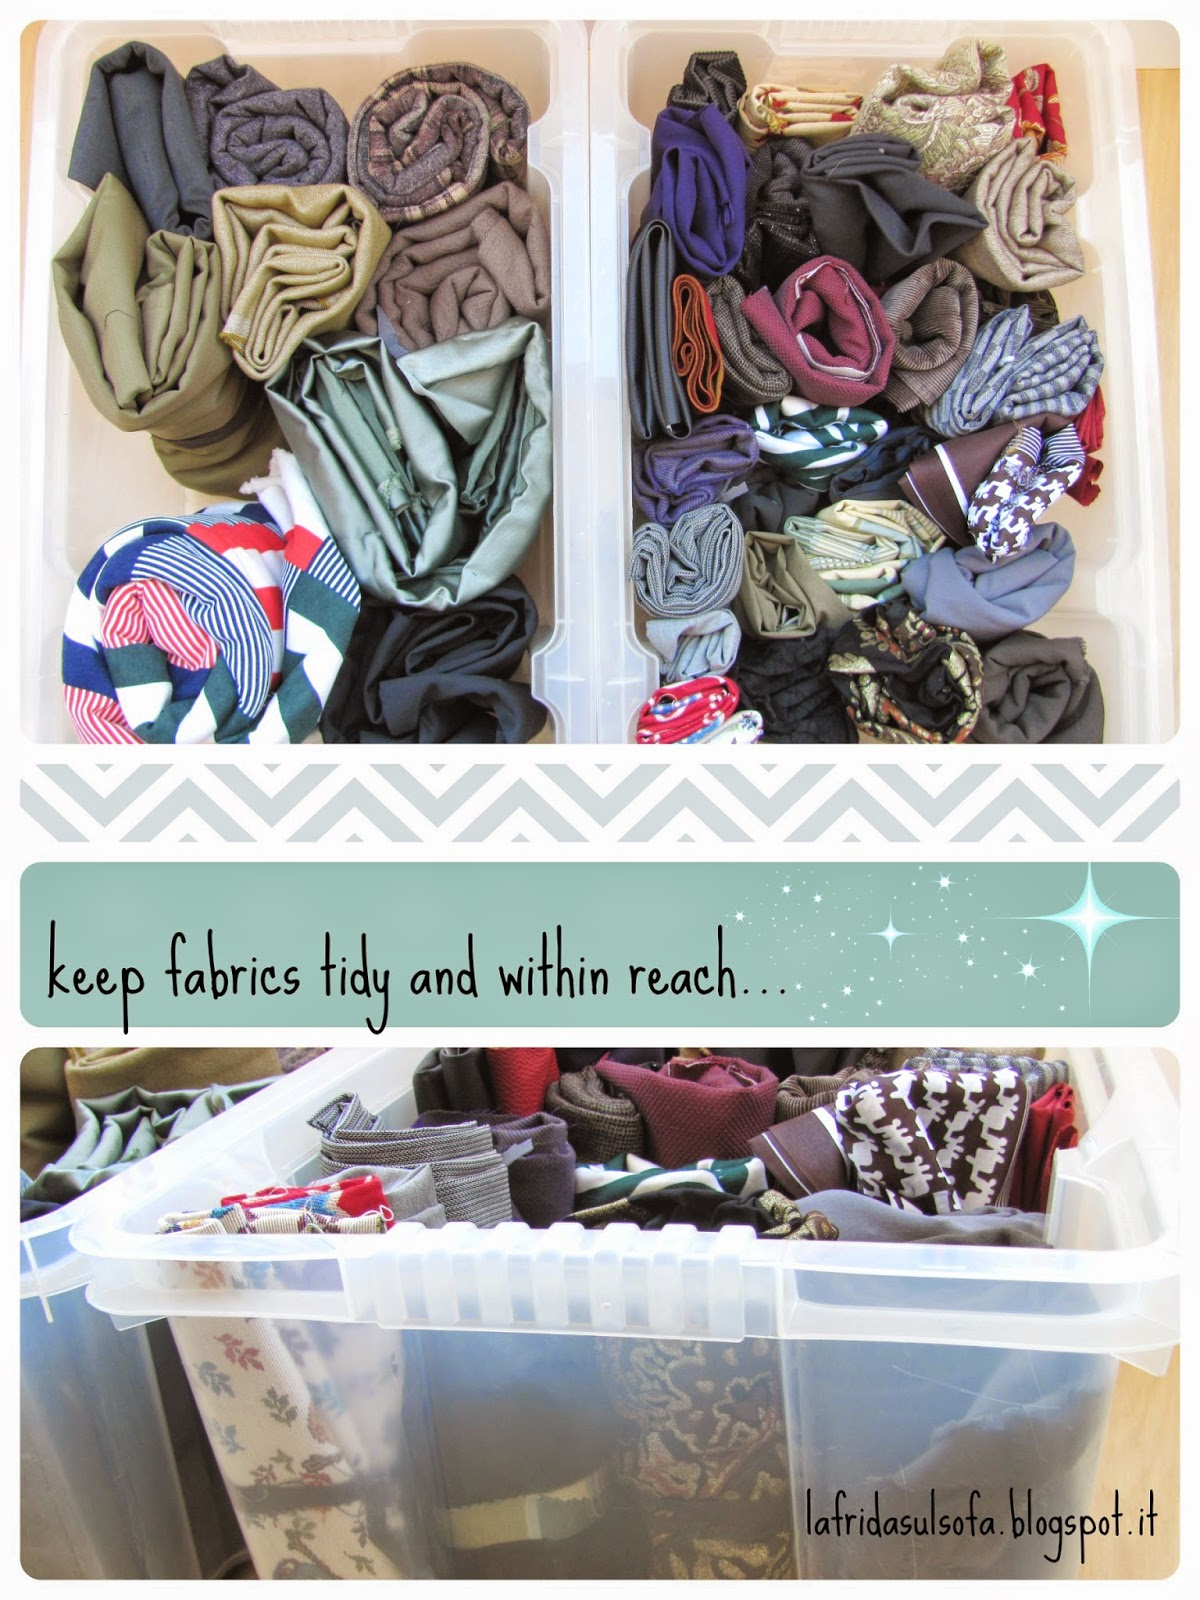 La frida sul sofà: Il mio modo per tenere in ordine e ben in vista le stoffe  - keep fabrics tidy and within reach in small places and boxes